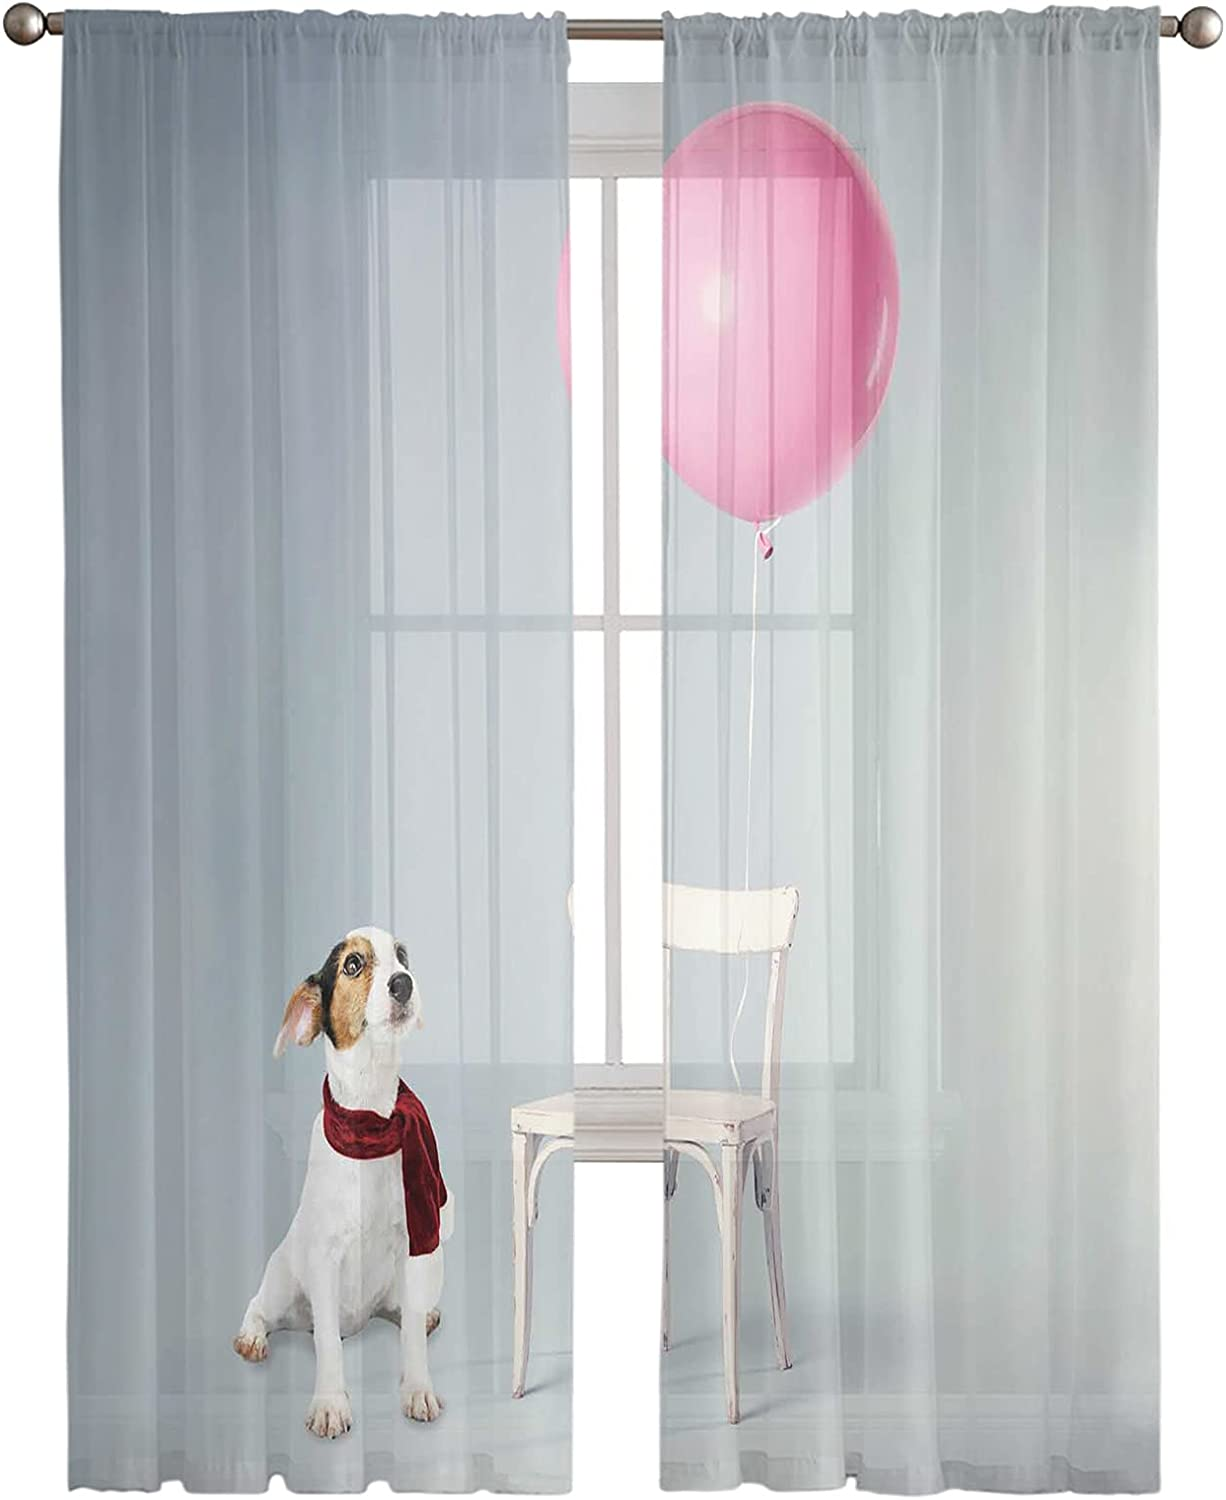 Zadaling Sheer Voile Curtains Outlet SALE Draperies-Funny The Dog Ranking TOP14 Sitting Fl